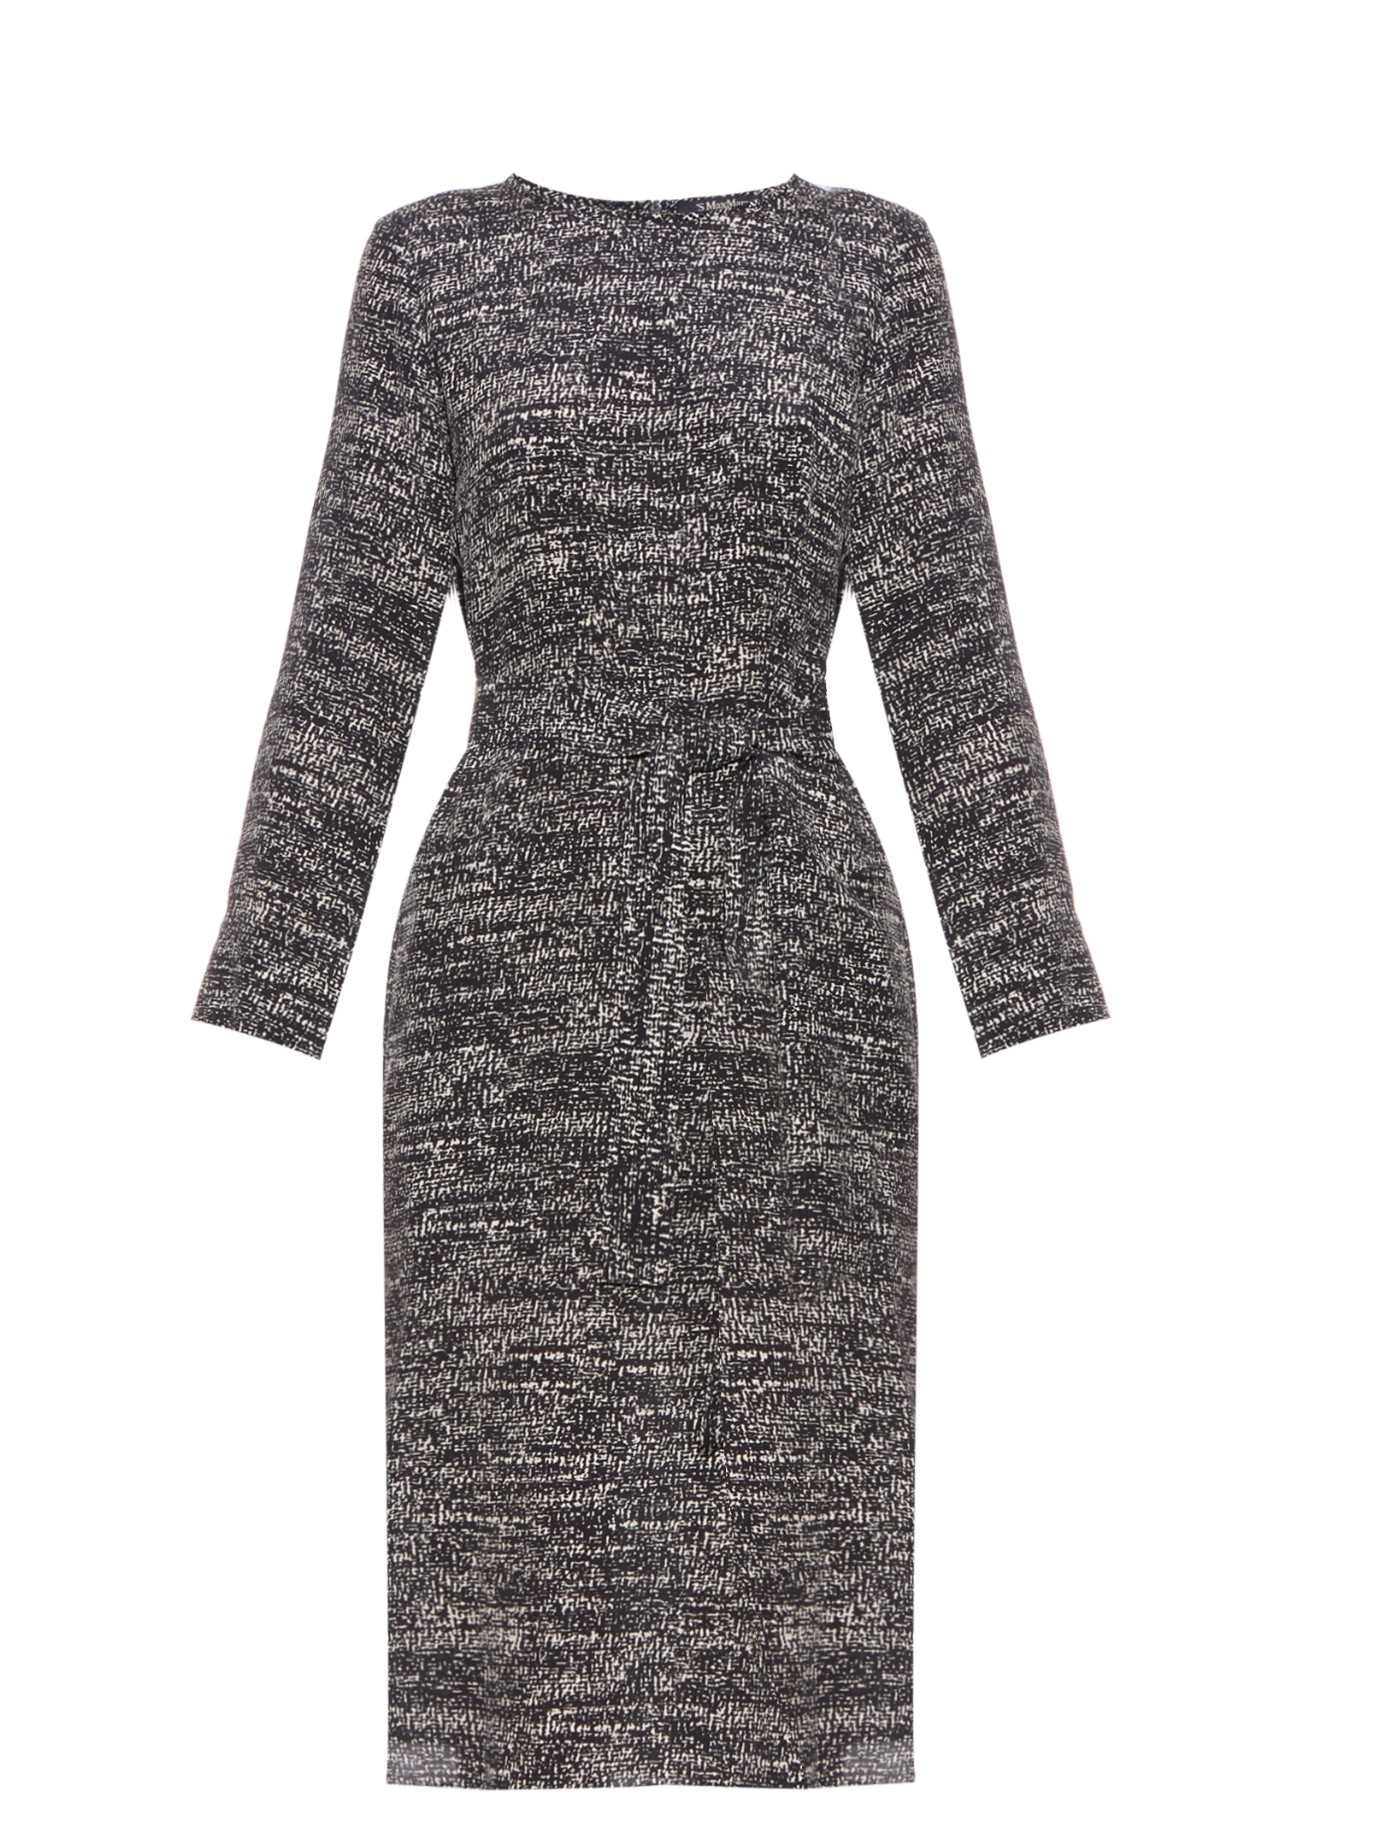 CASUAL CHIC: S MAX MARA Zina dress